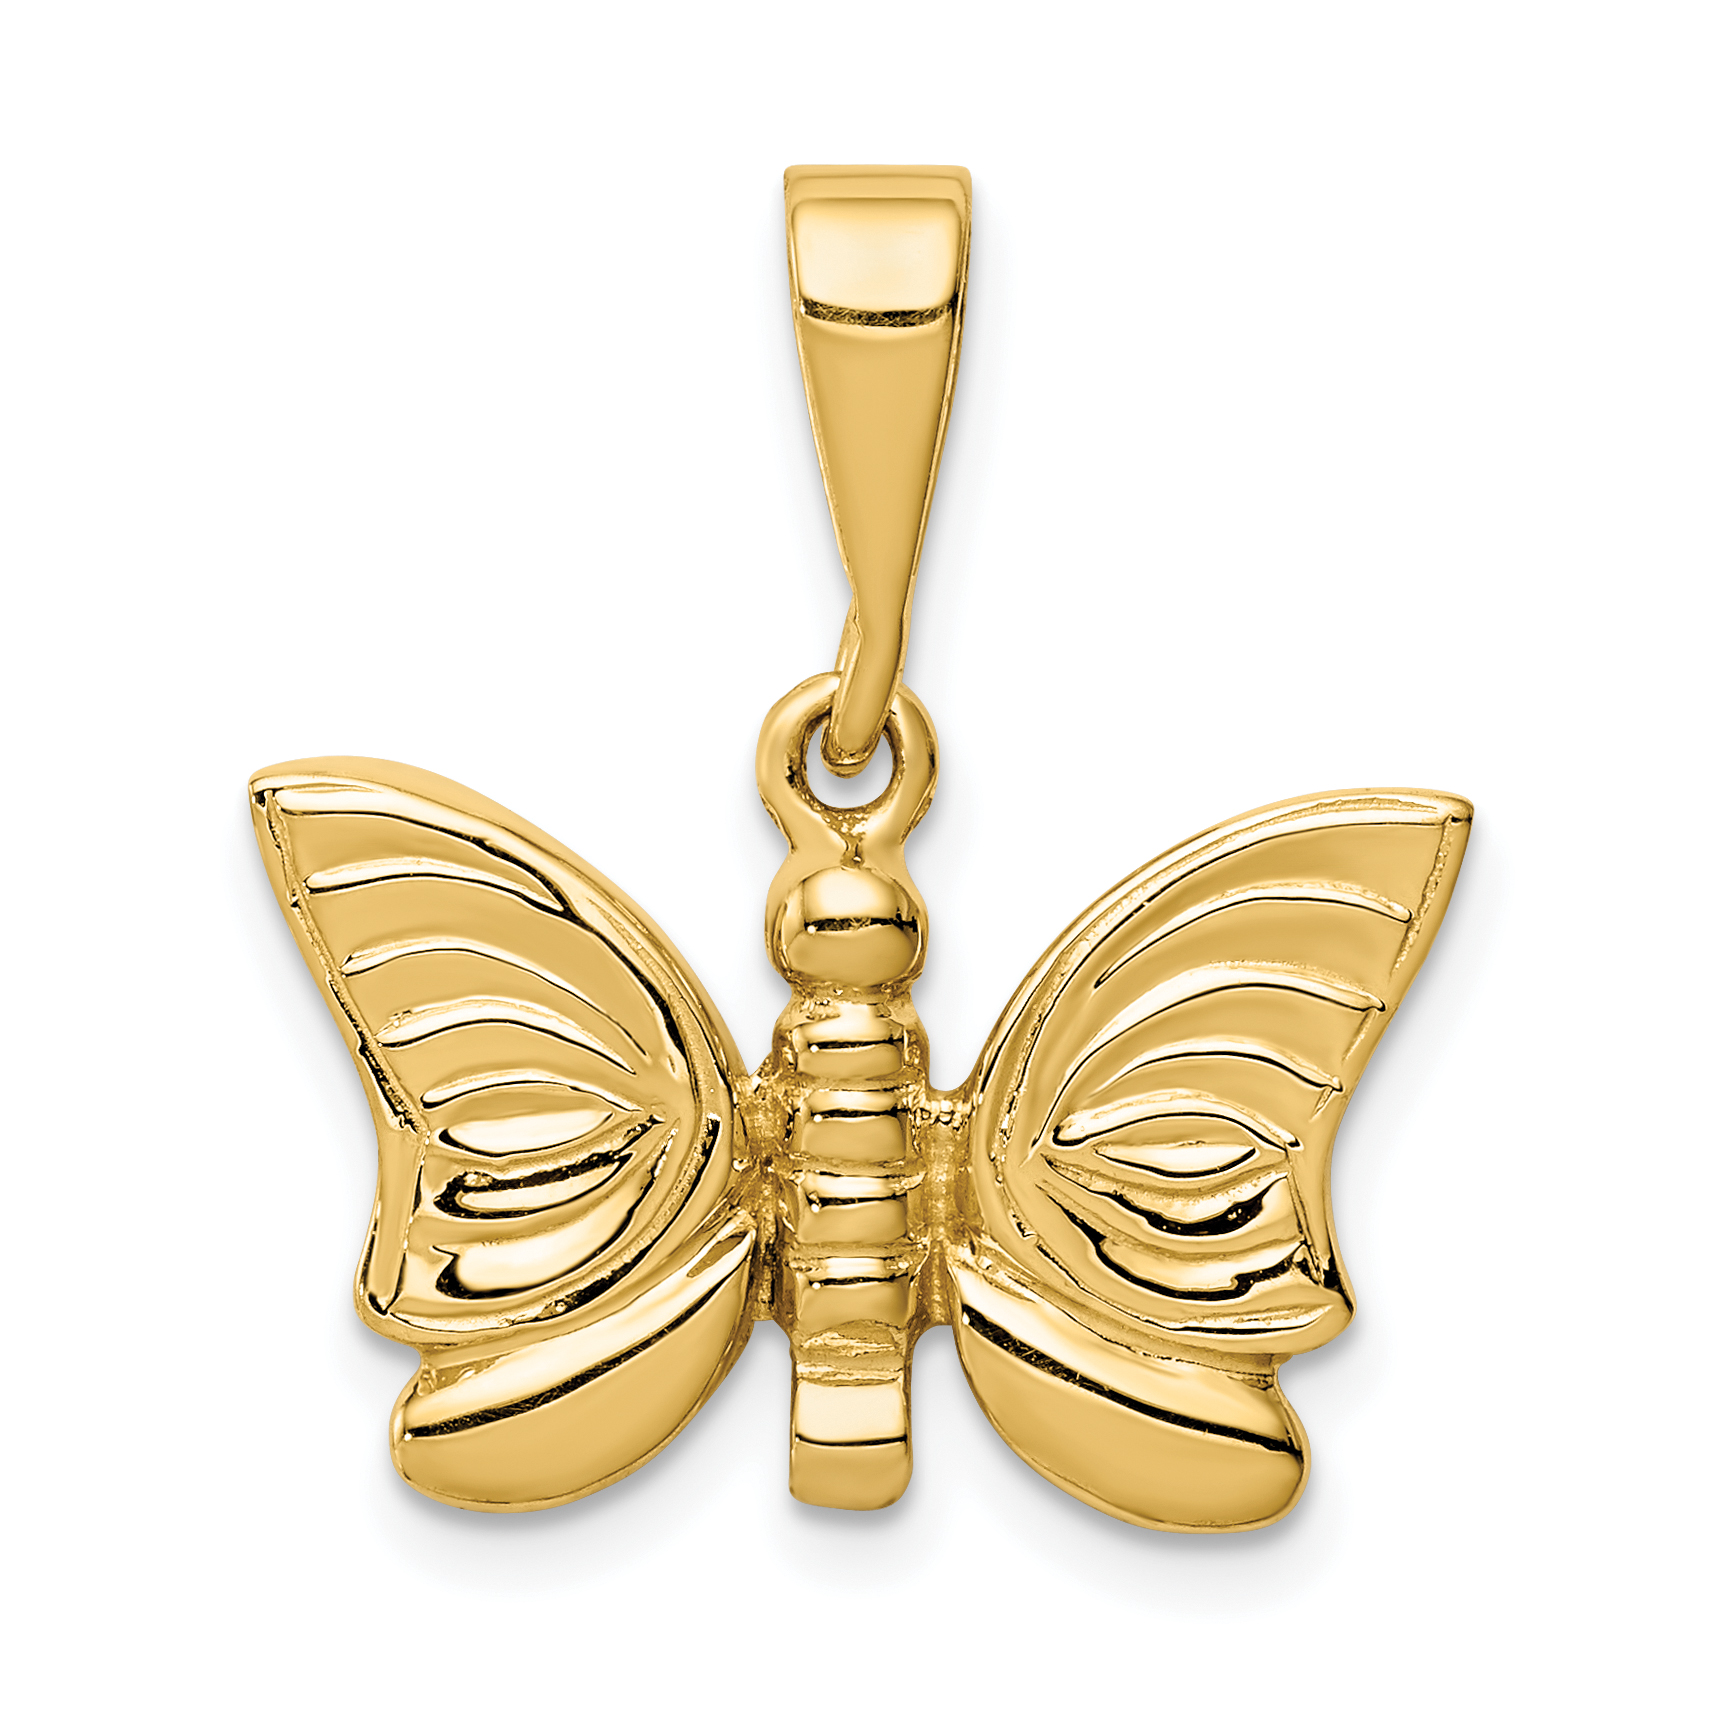 14k gold polished butterfly pendant for What is gold polished jewelry